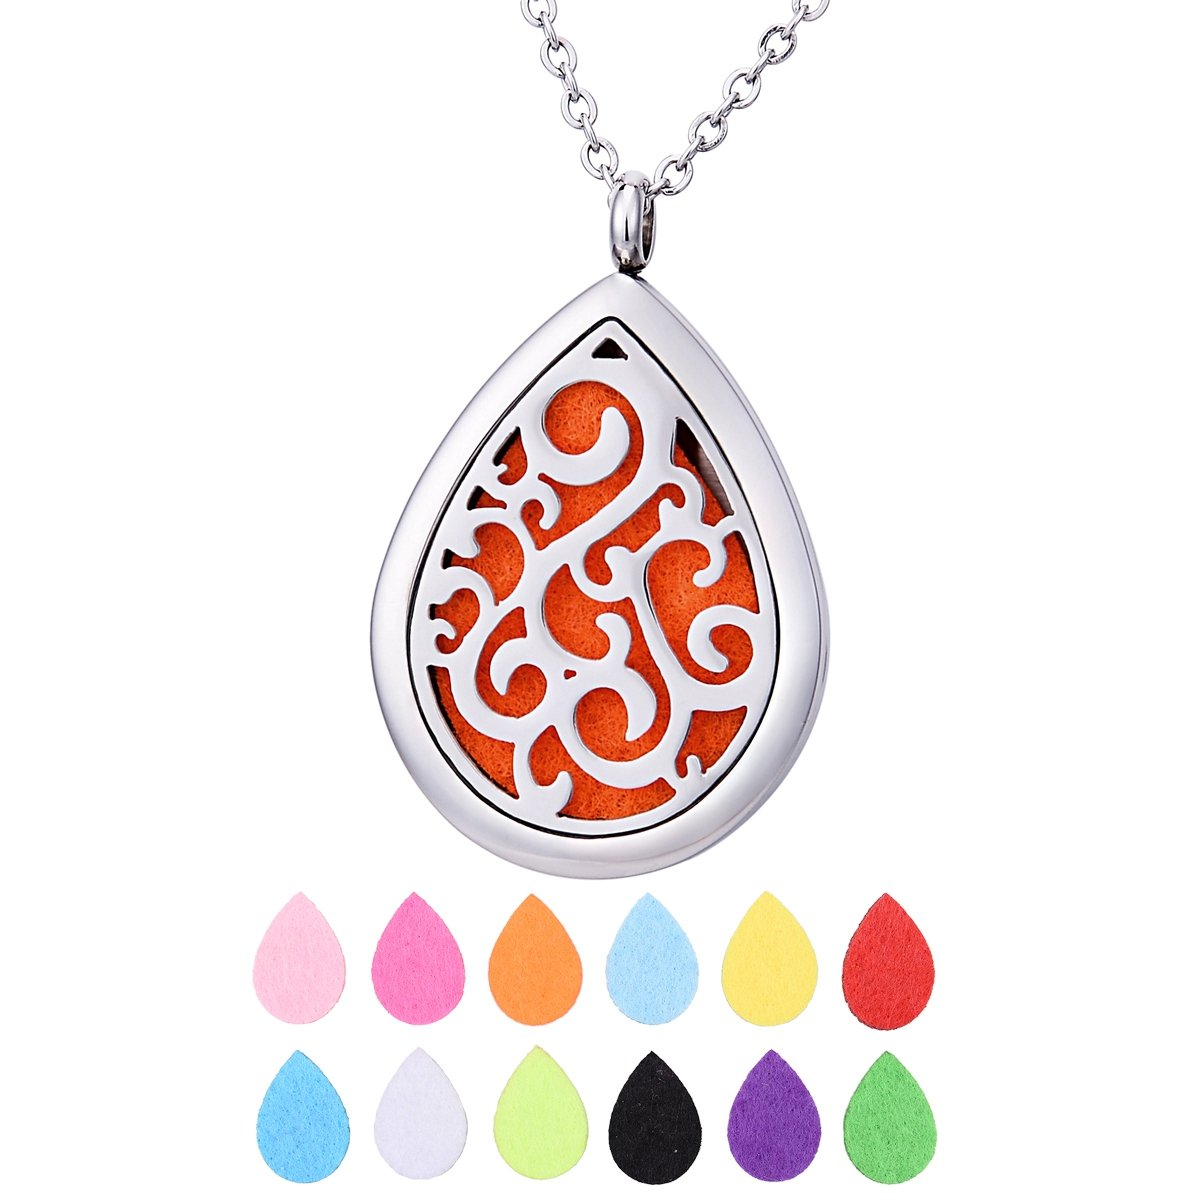 QX Essential Oil Diffuser Necklace Stainless Steel Aromatherapy Locket Pendant Jewelry Teen Girls Gifts - Teardrops 44mmx28mm